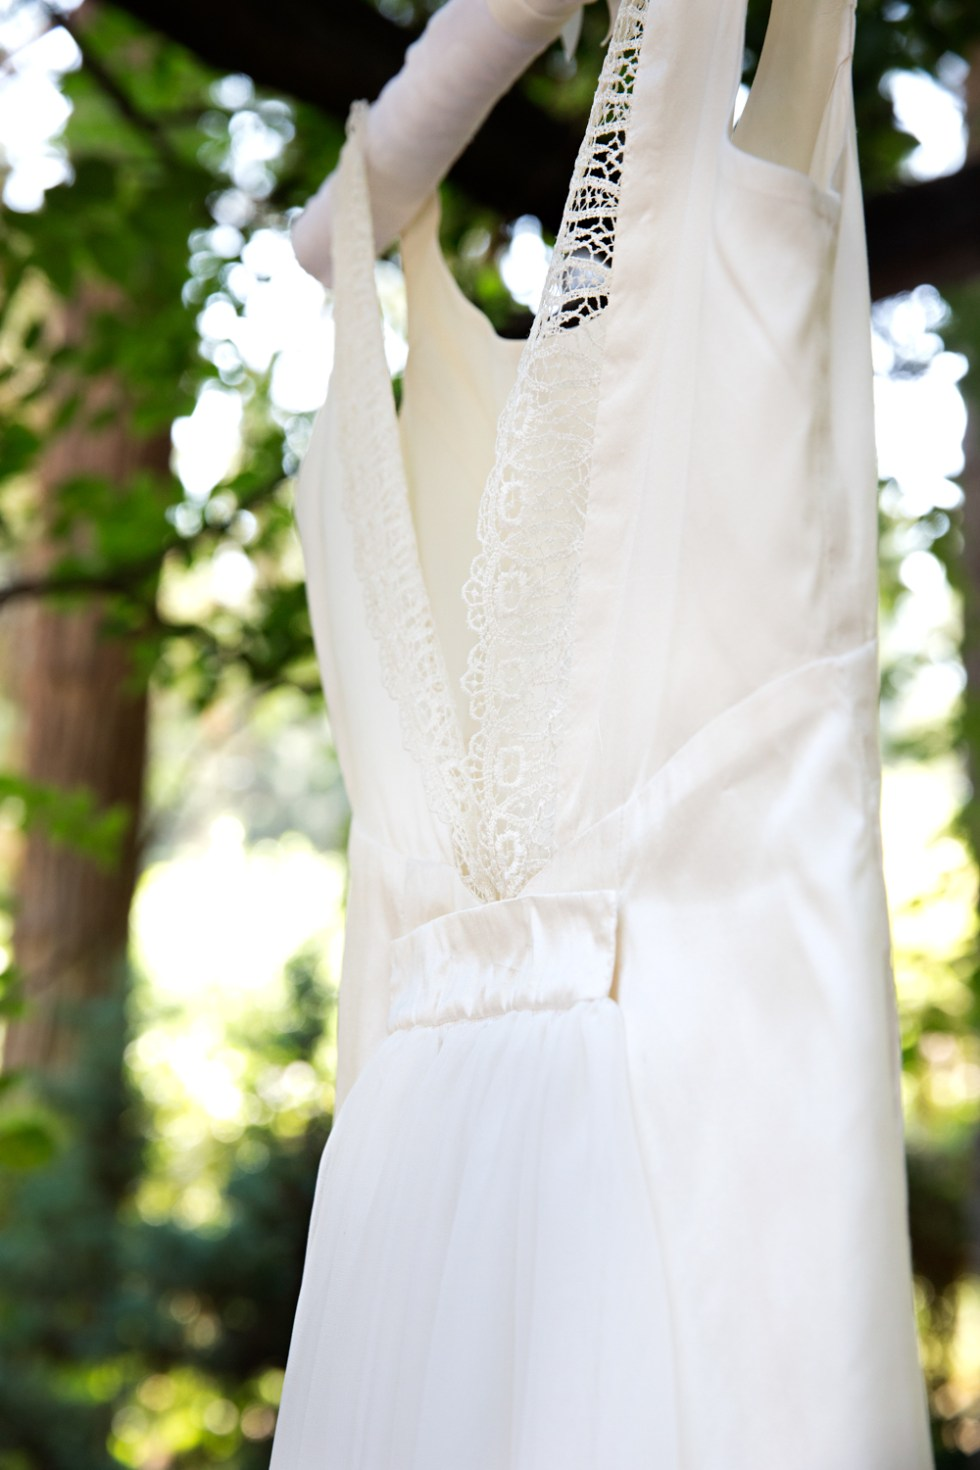 Homemade Wedding Dress Story + Design